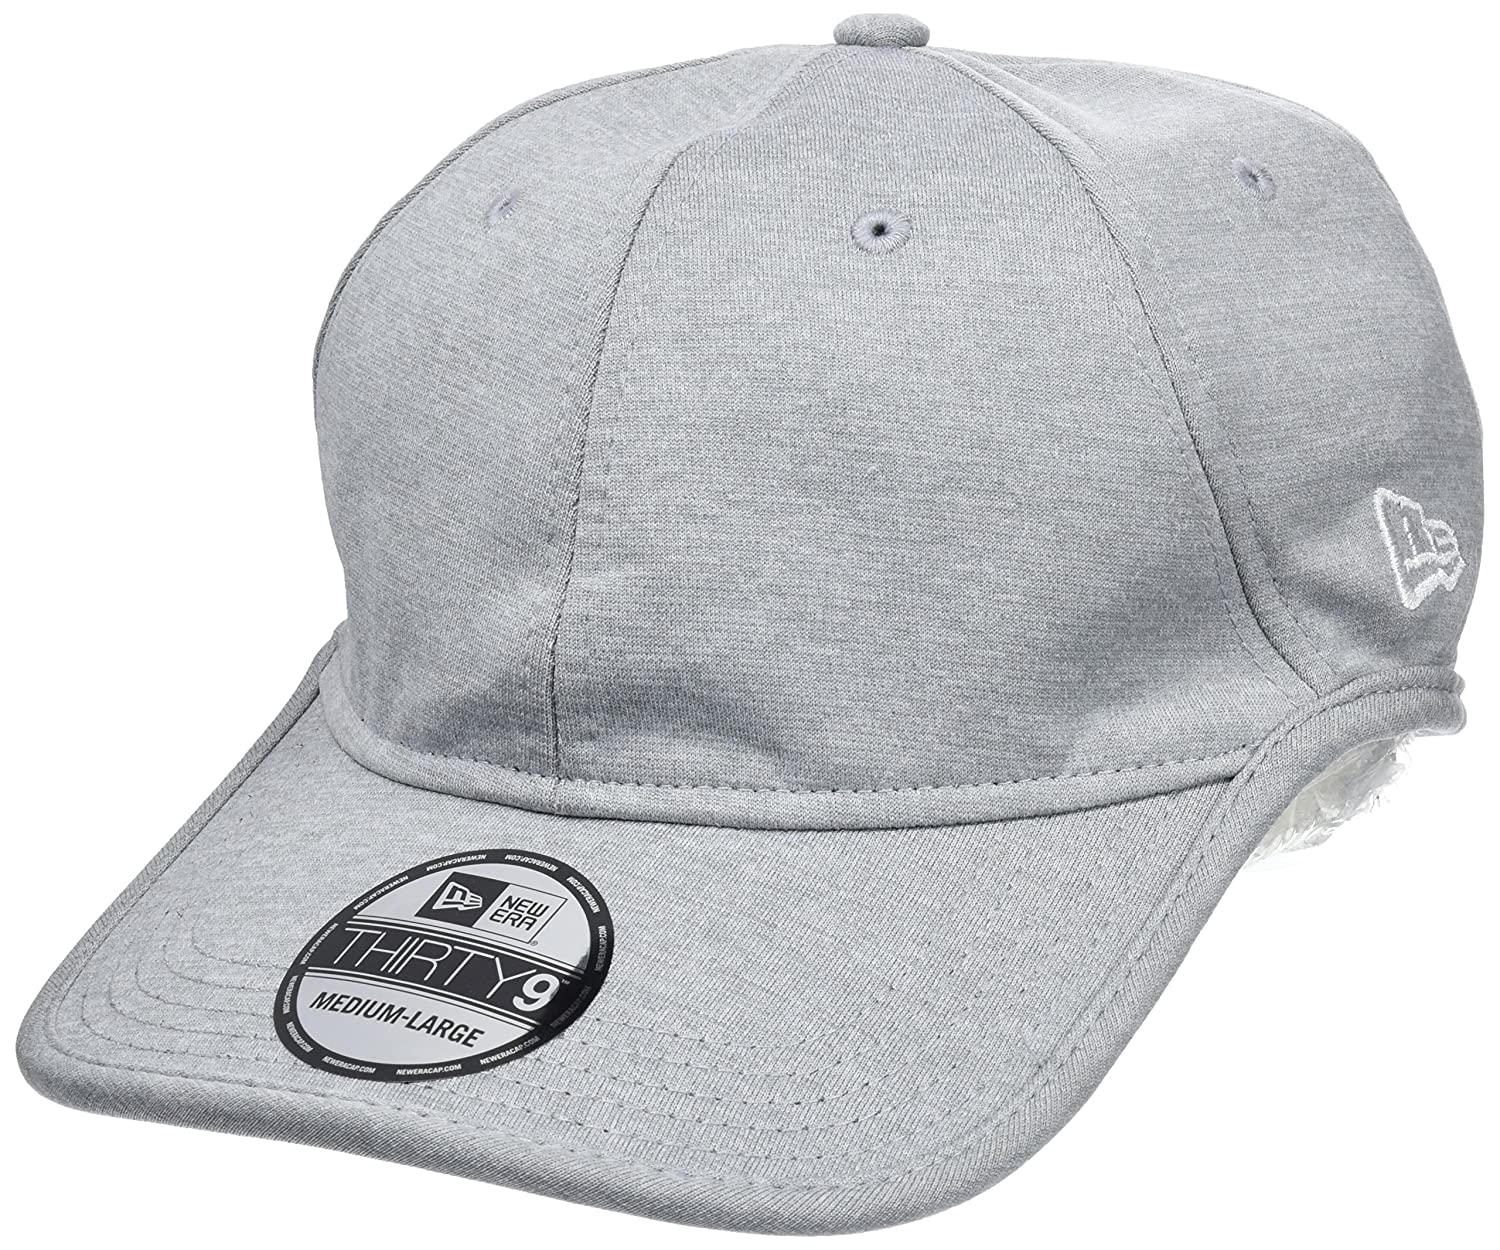 71267cd3a New Era Shadow Tech Running Cap - Heather Grey SM: Amazon.co.uk ...